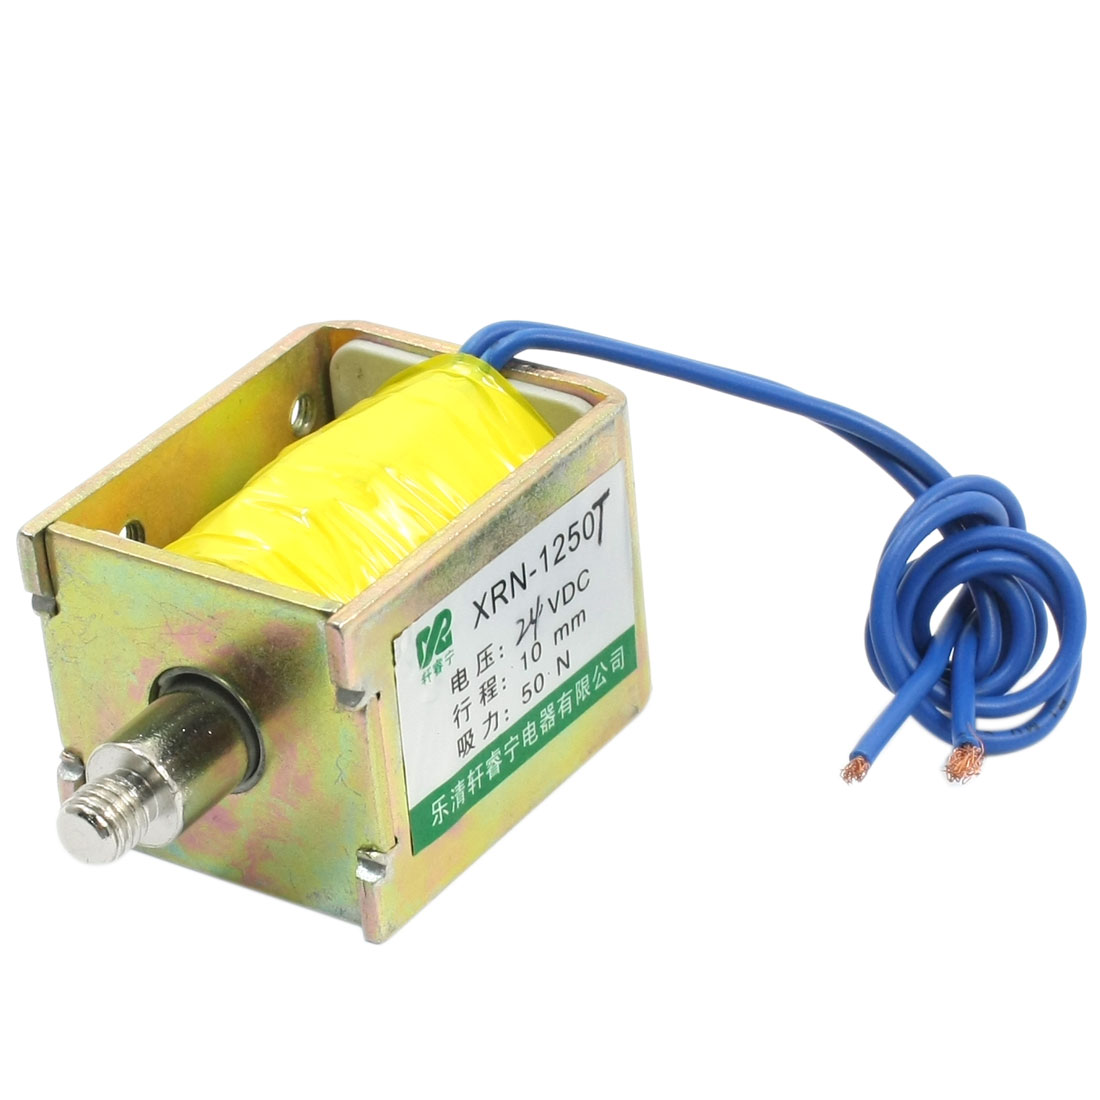 UXCELL Xrn-1250T  24V 50N 10Mm Pull Type Open Frame Two Wires Electromagnetic Linear Solenoid 50 1250